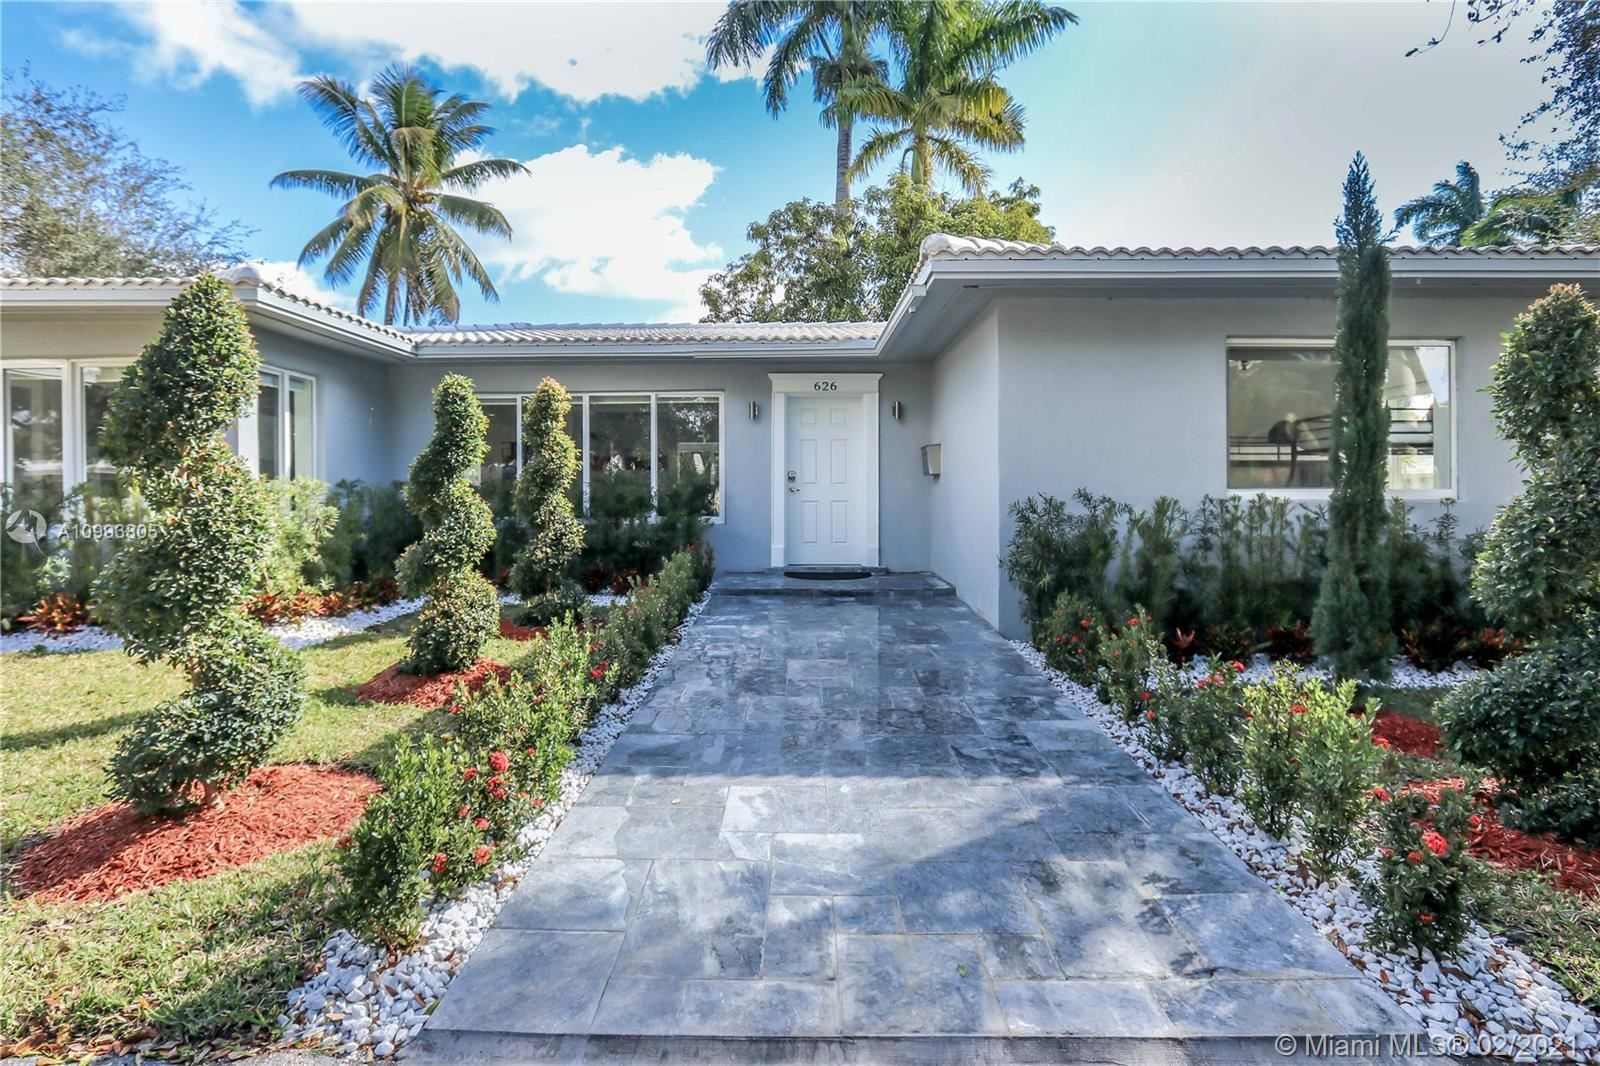 626 S 13th Ave, Hollywood, FL 33019 - #: A10993805